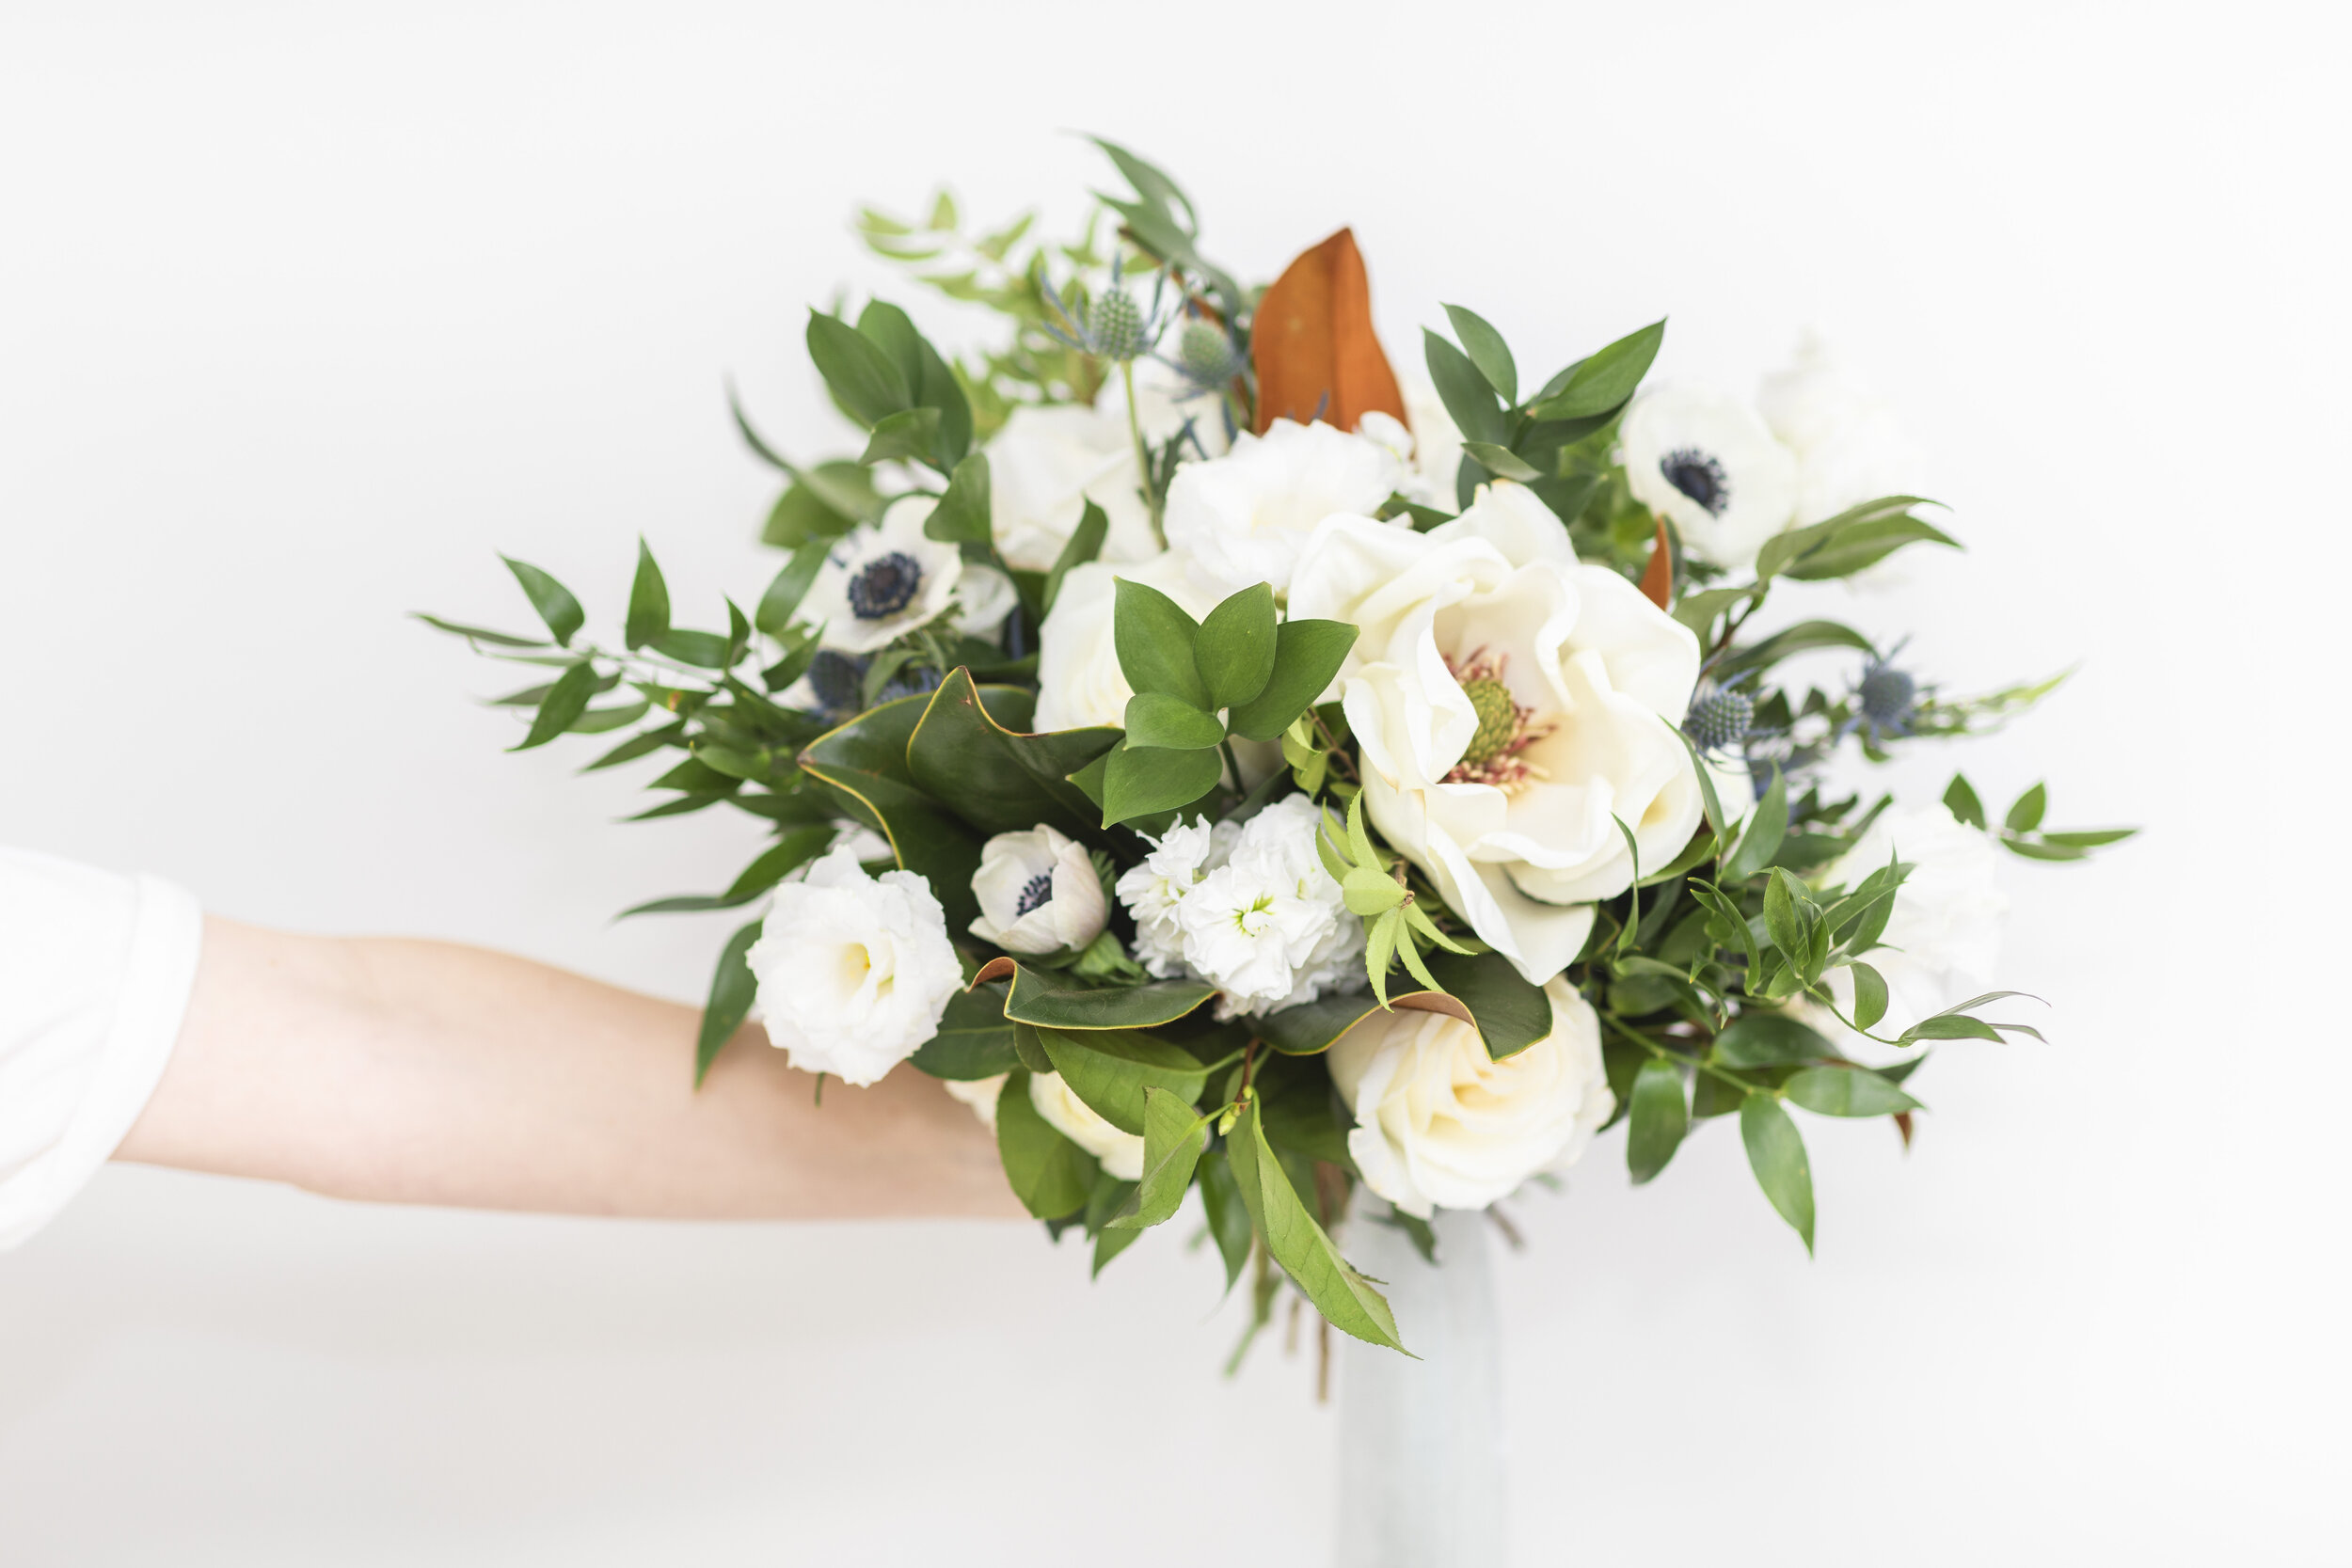 best florist in the utah county special occasions make someones day make someones night just because so someone your care with beautiful flowers by sarah from blushing rose floral sentiments from the heart wedding day flower inspiration anniversary flower beauty of the earth when in doubt flower out #floristtips #tipsandtricks #vendorspotlight #blushingrosefloral #florist #utahcounty #wedding #inspiration #help #flowers